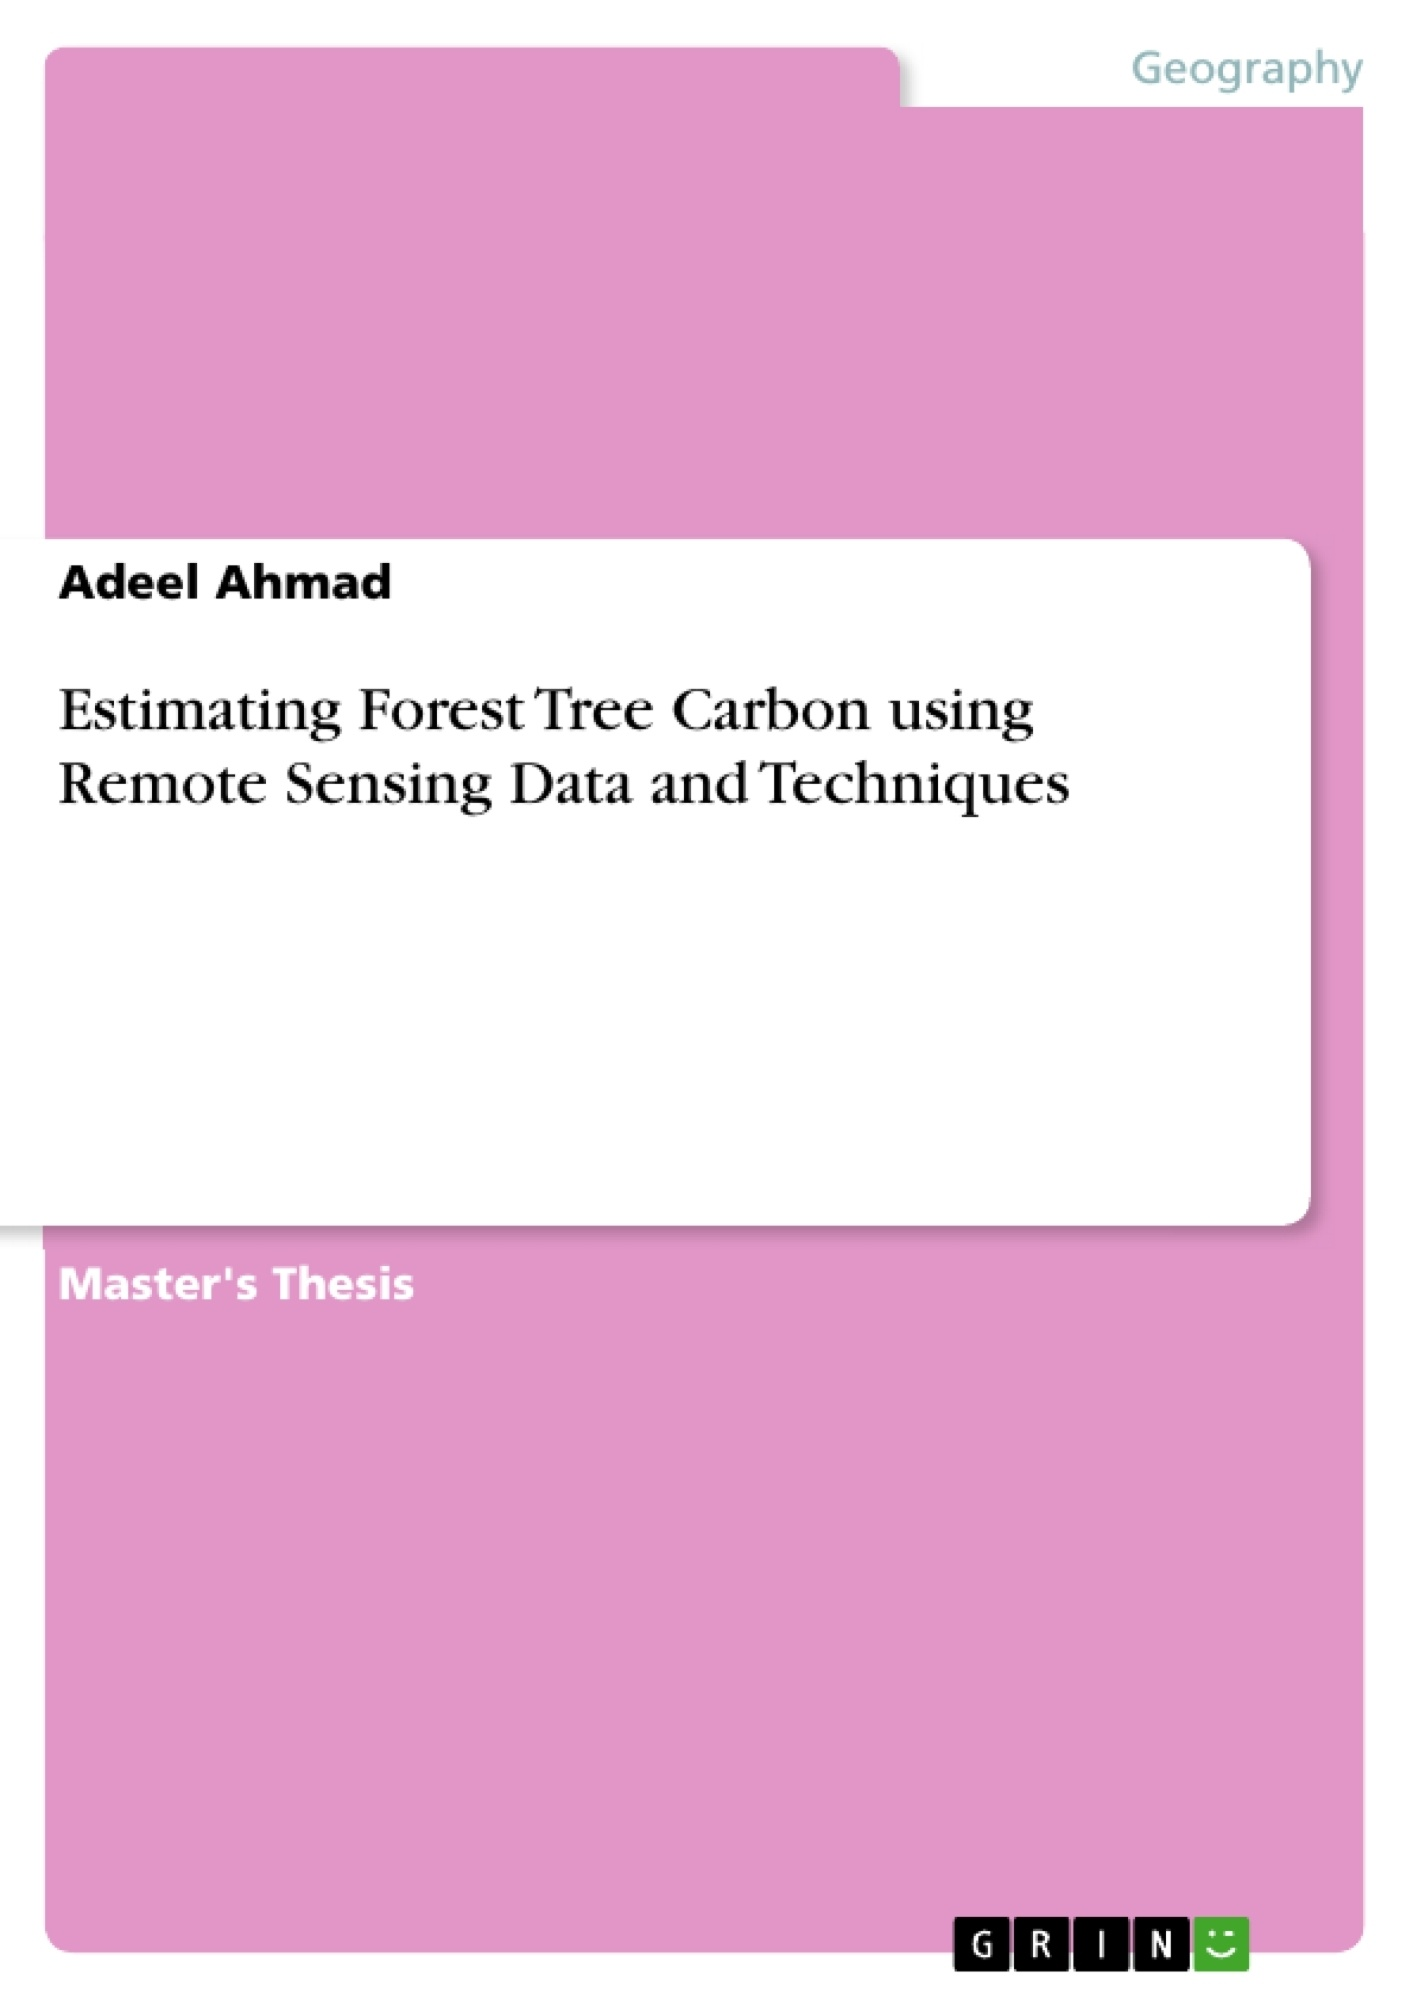 Title: Estimating Forest Tree Carbon using Remote Sensing Data and Techniques